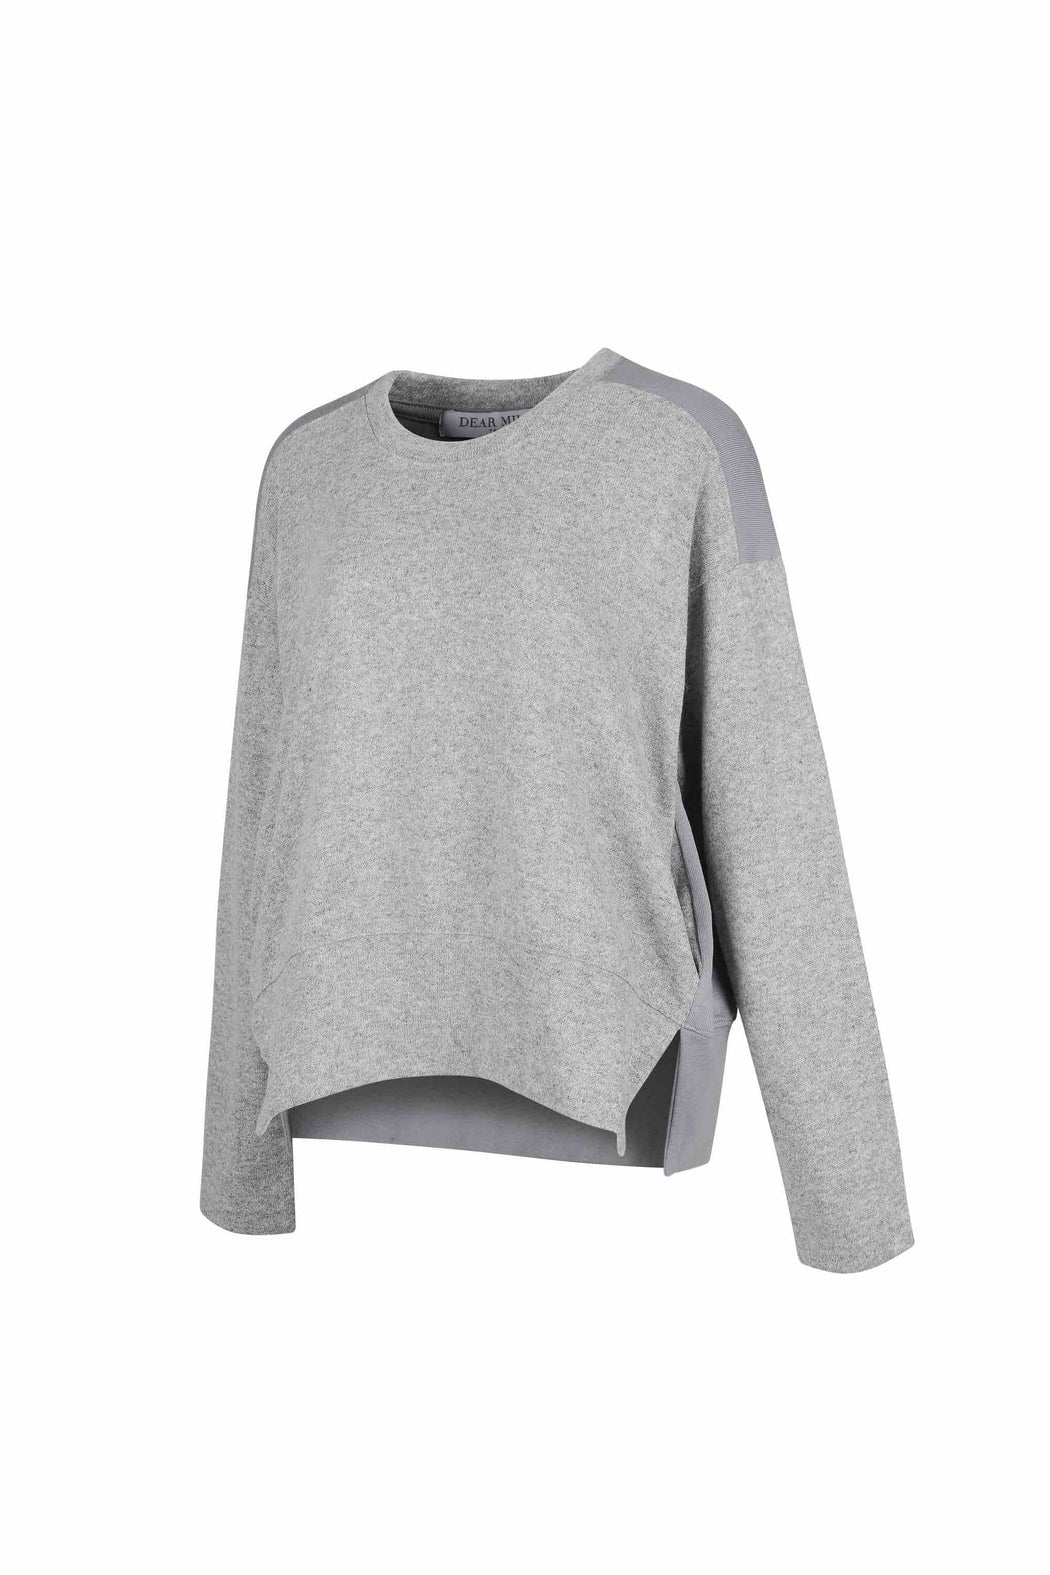 Side view of Women Fabric Block Sweater, made with Organic Cotton and wool blends in grey/melange grey